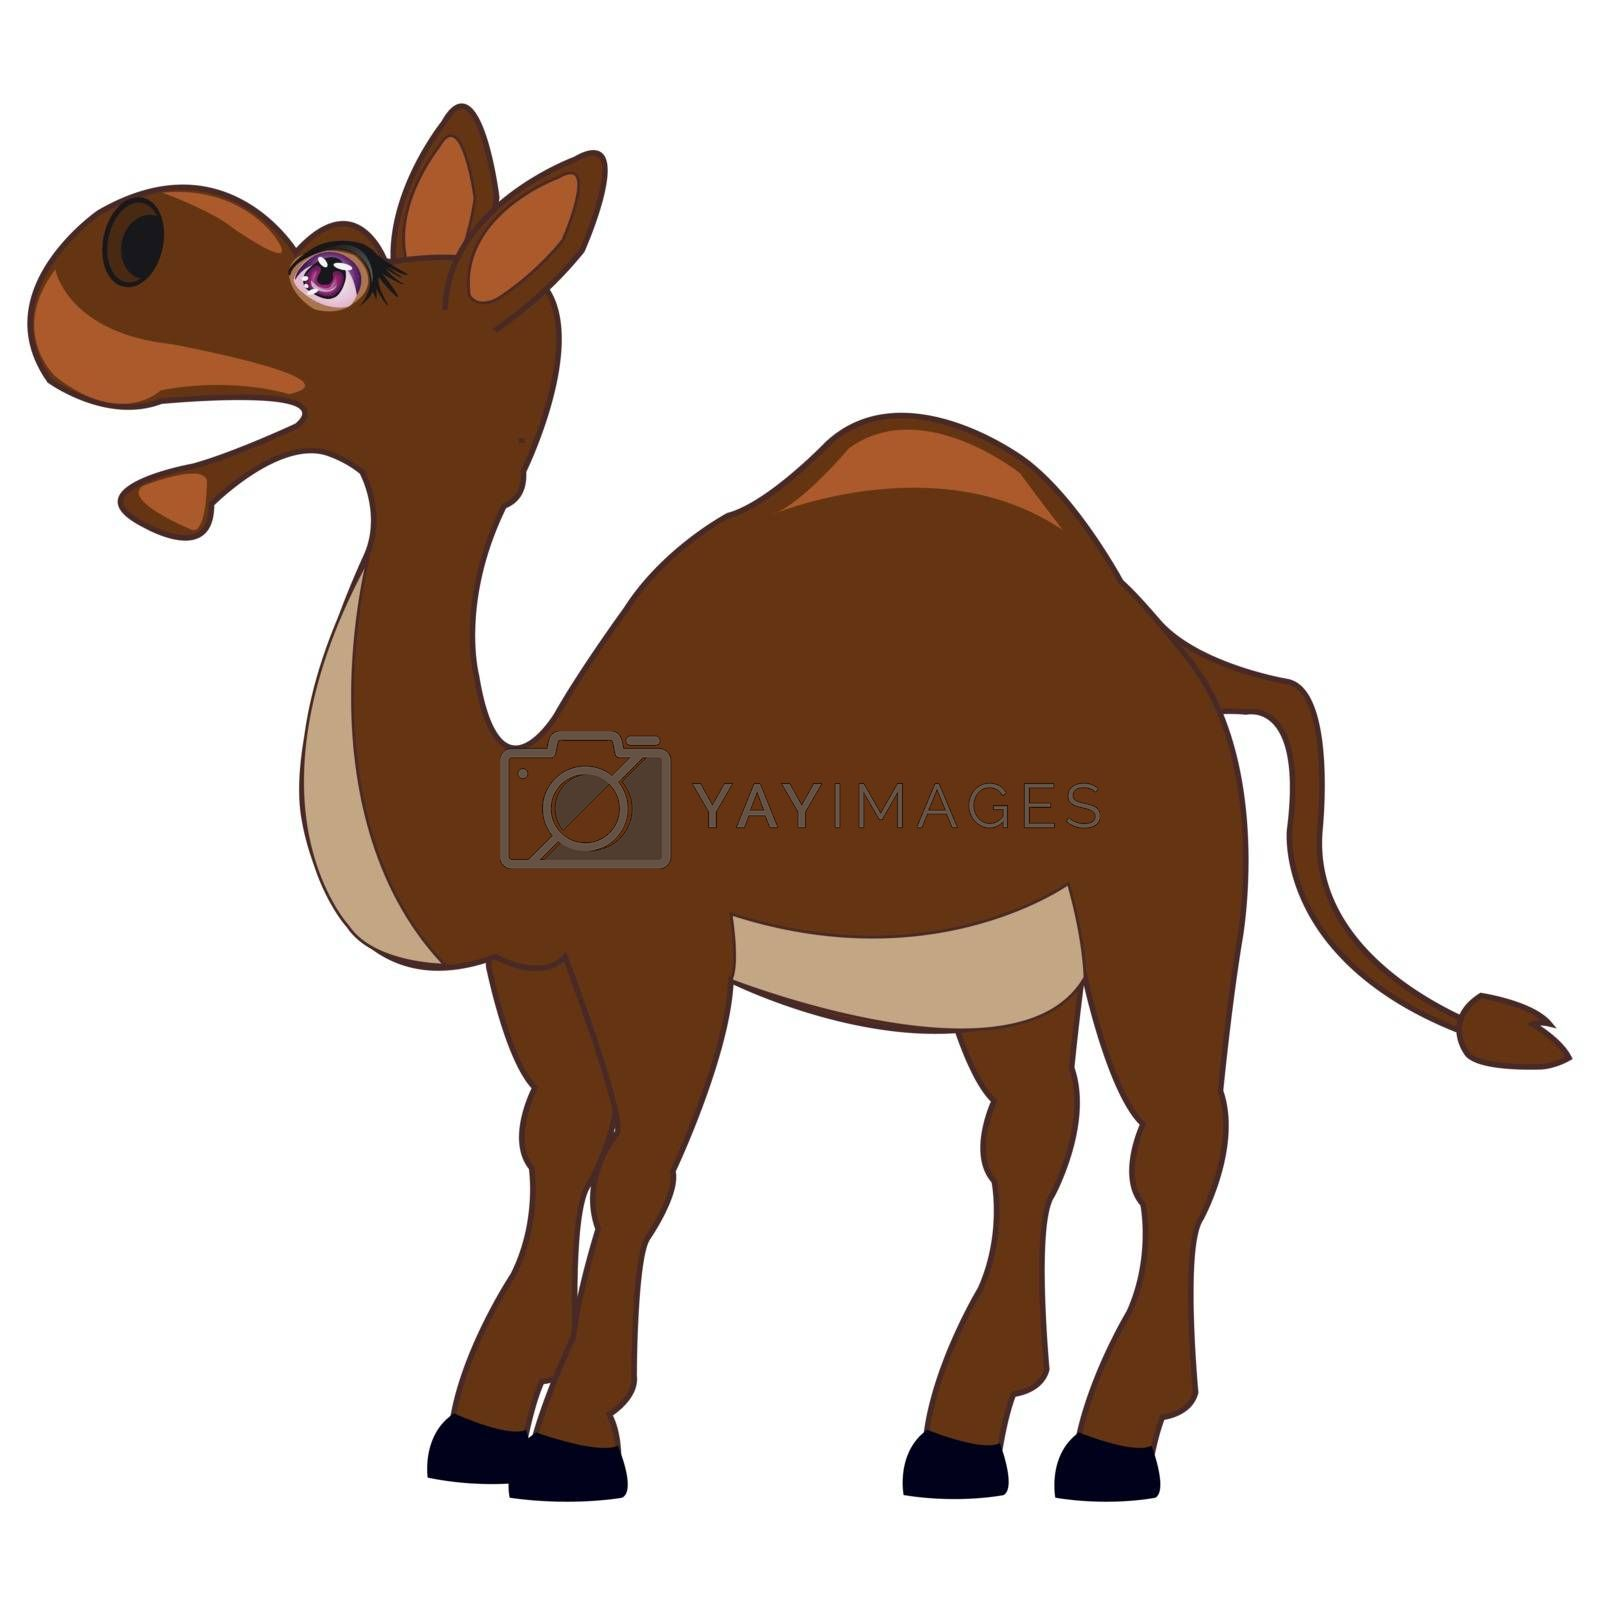 Vector illustration of the camel on white background